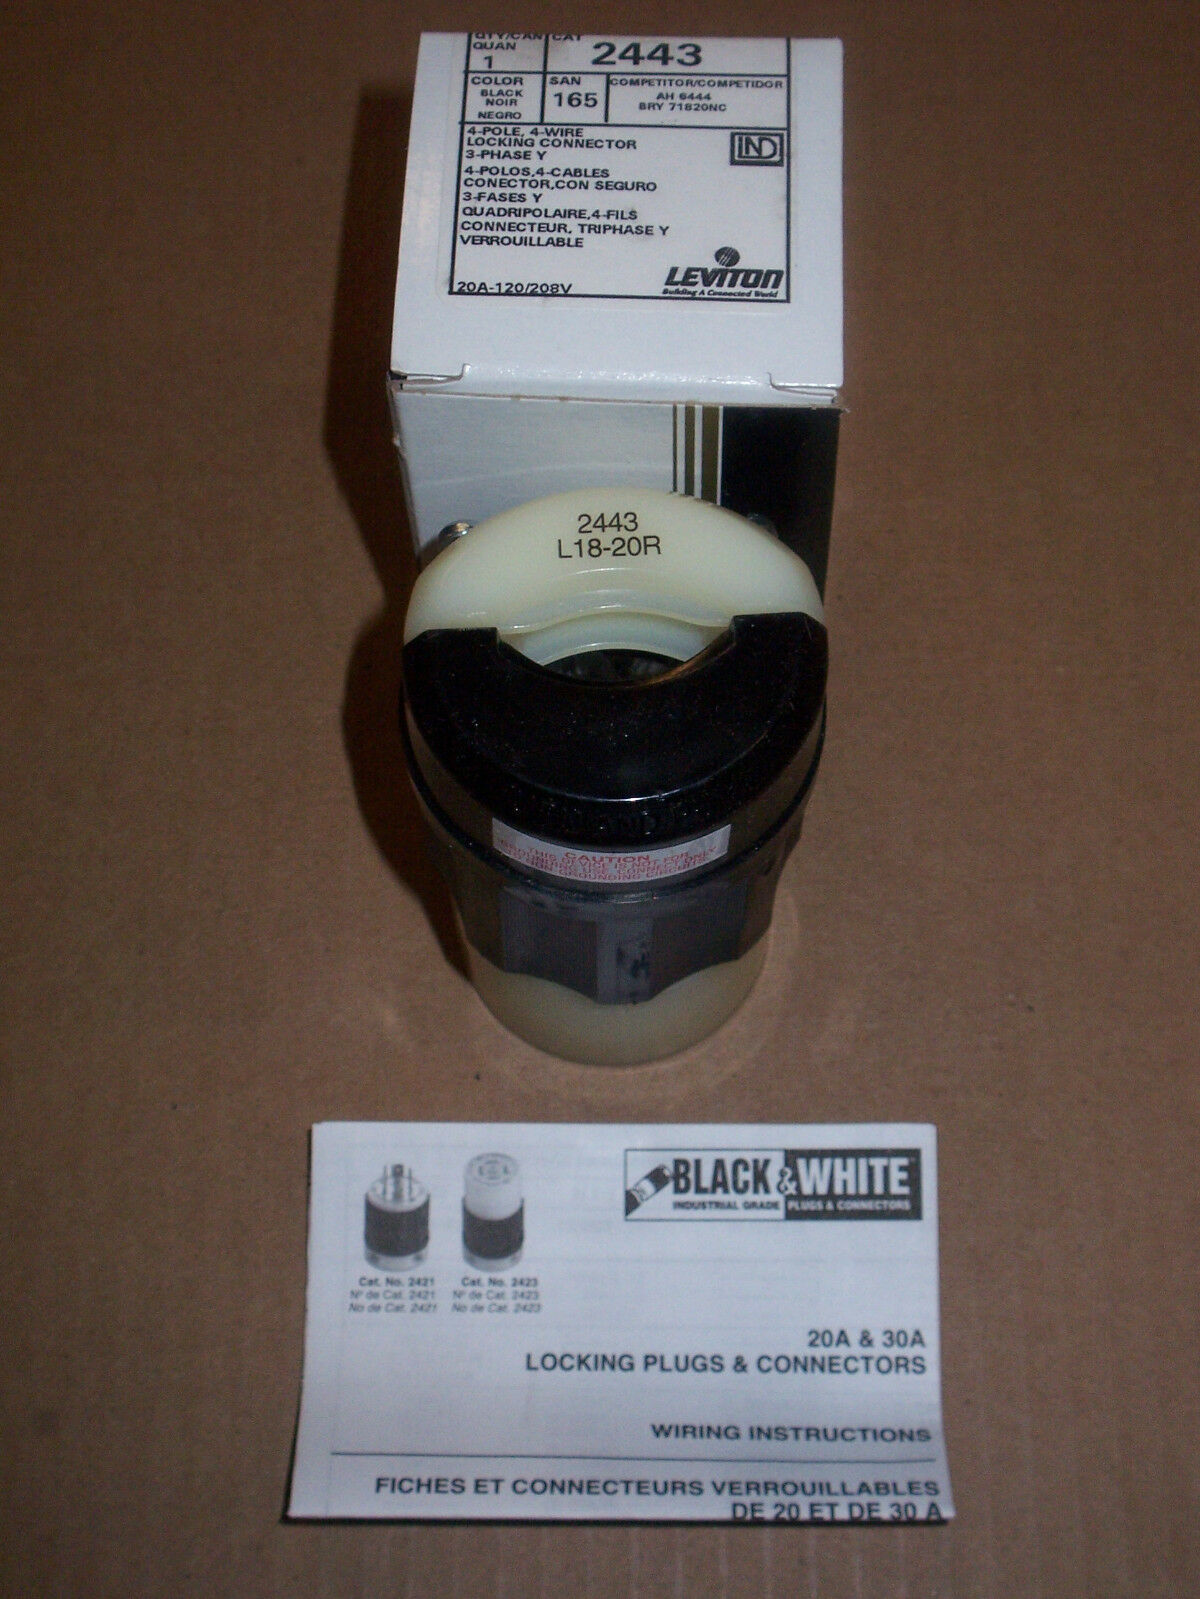 Leviton L18 20 Locking Connector 20a 120 208v 2443 Ebay 3 Phase Wiring Plugs Norton Secured Powered By Verisign